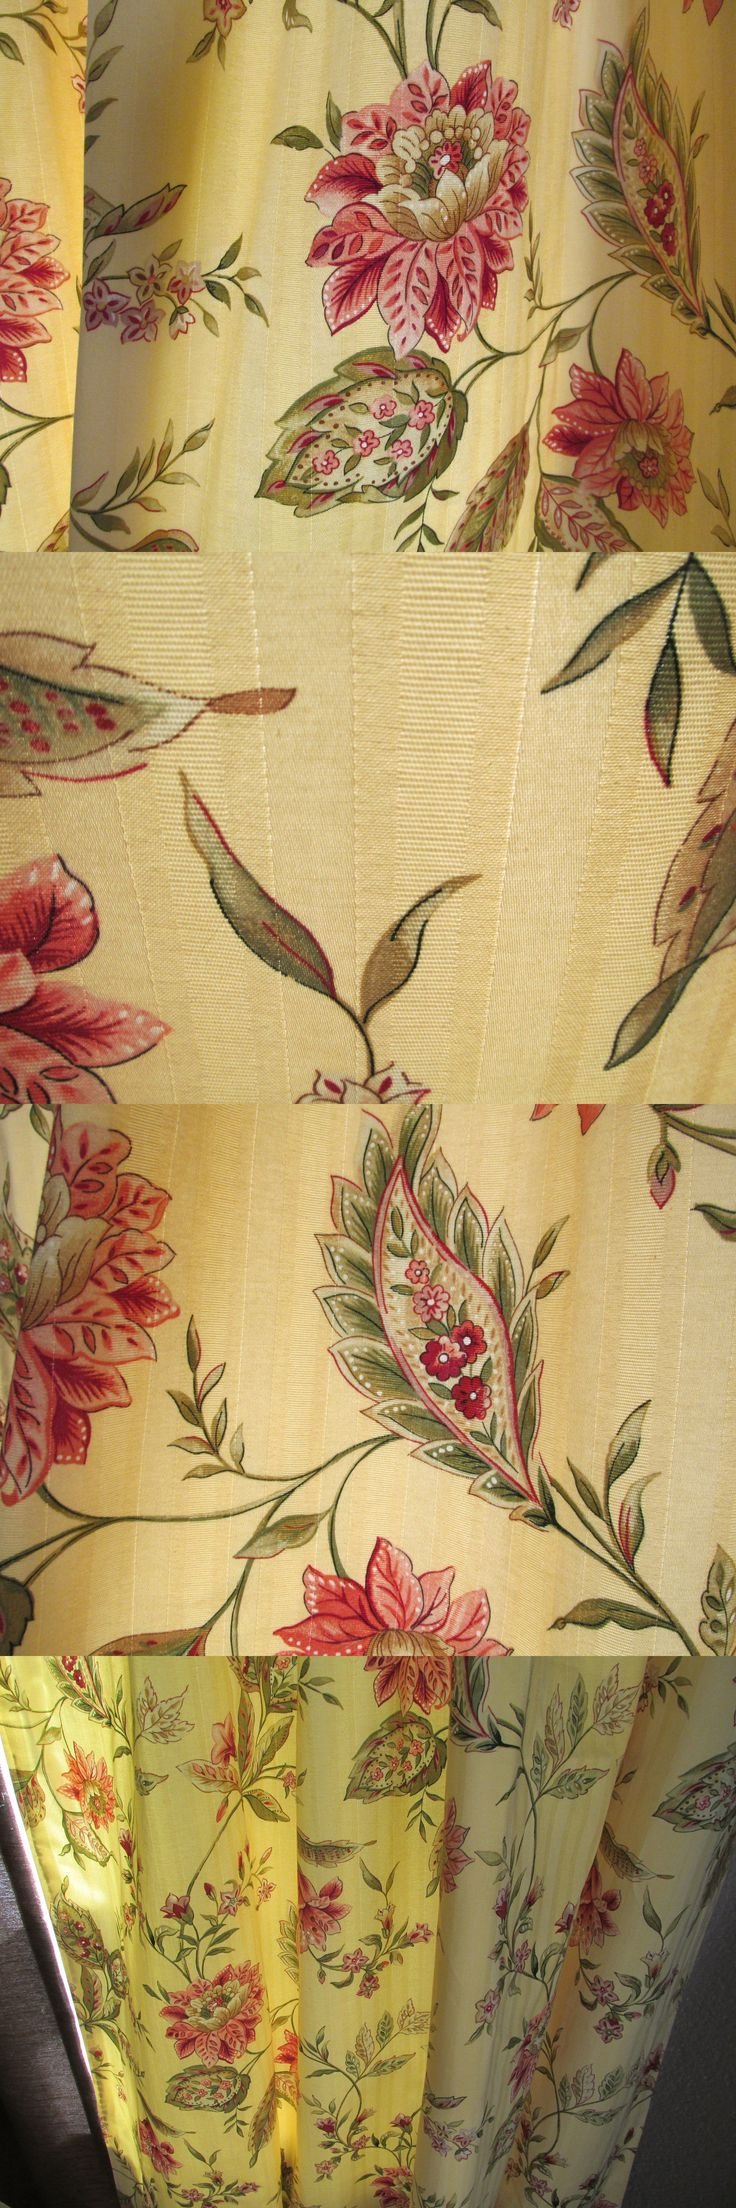 Curtains Drapes and Valances 45515: New Custom Lined Pole Drapes 2 Panels 54 X 84 Floral Yellow Green Crimson -> BUY IT NOW ONLY: $139 on eBay!